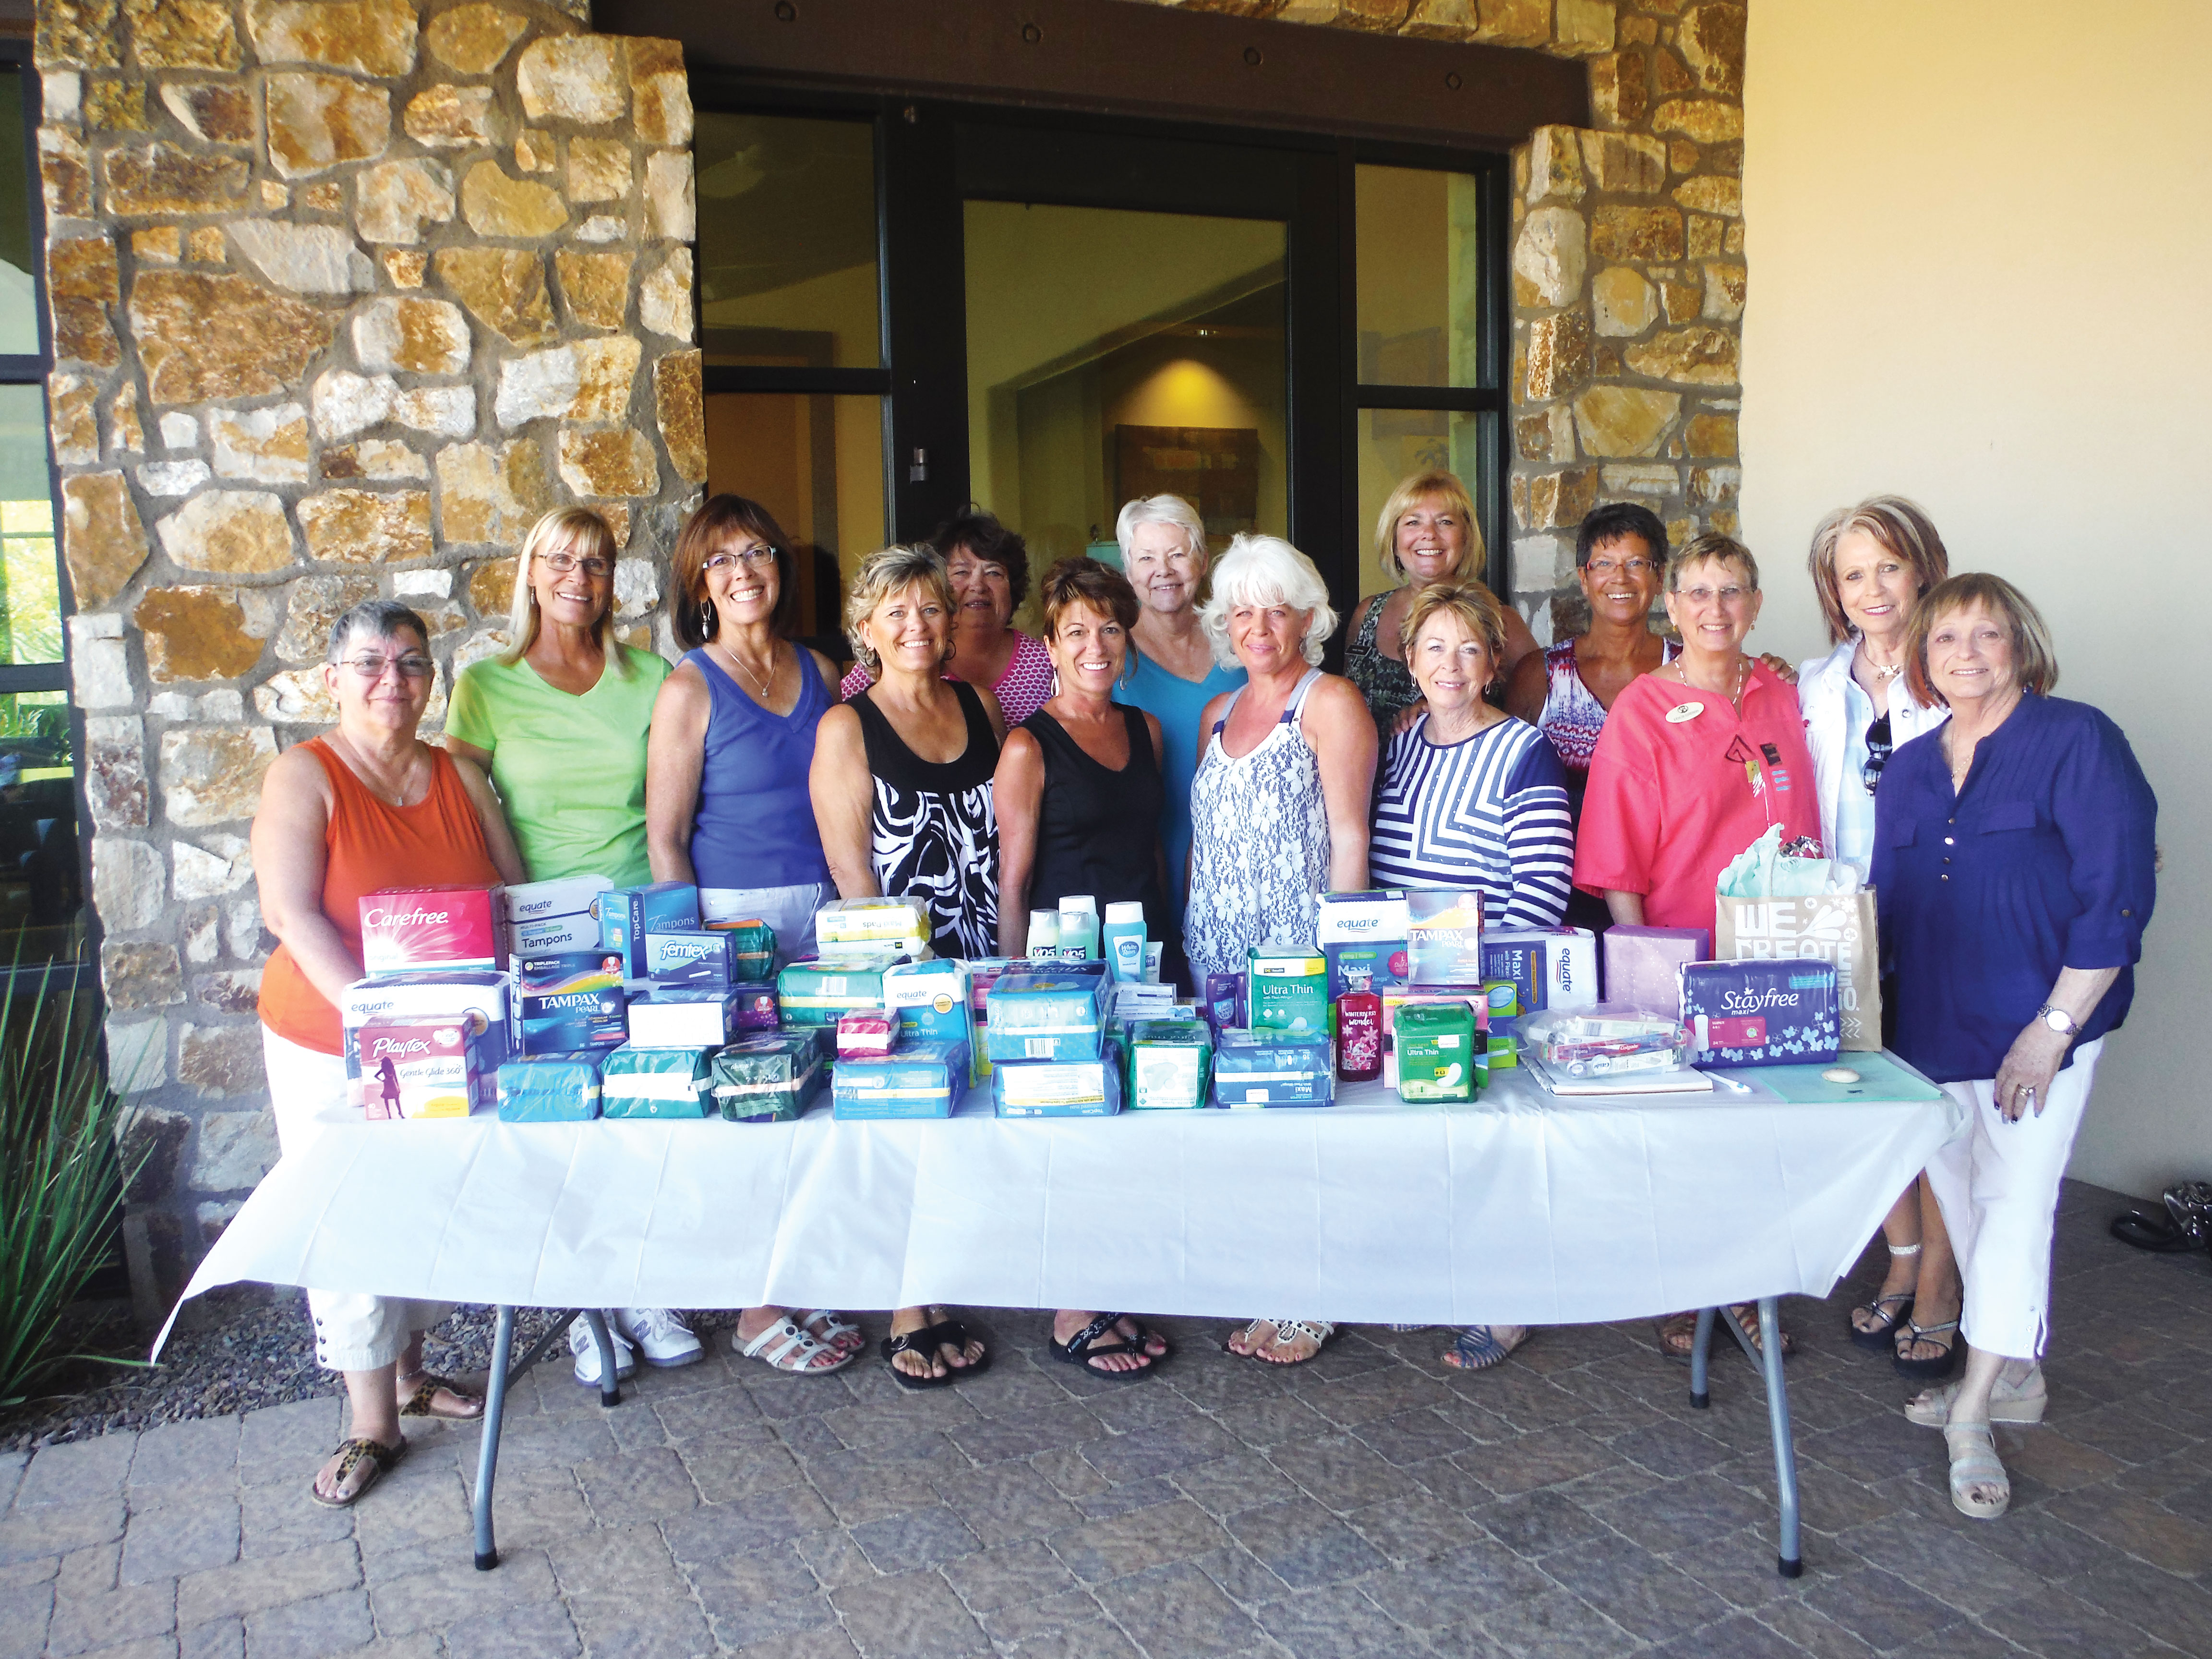 Members of Gathering Hearts and the donations they received for the YOTO program.